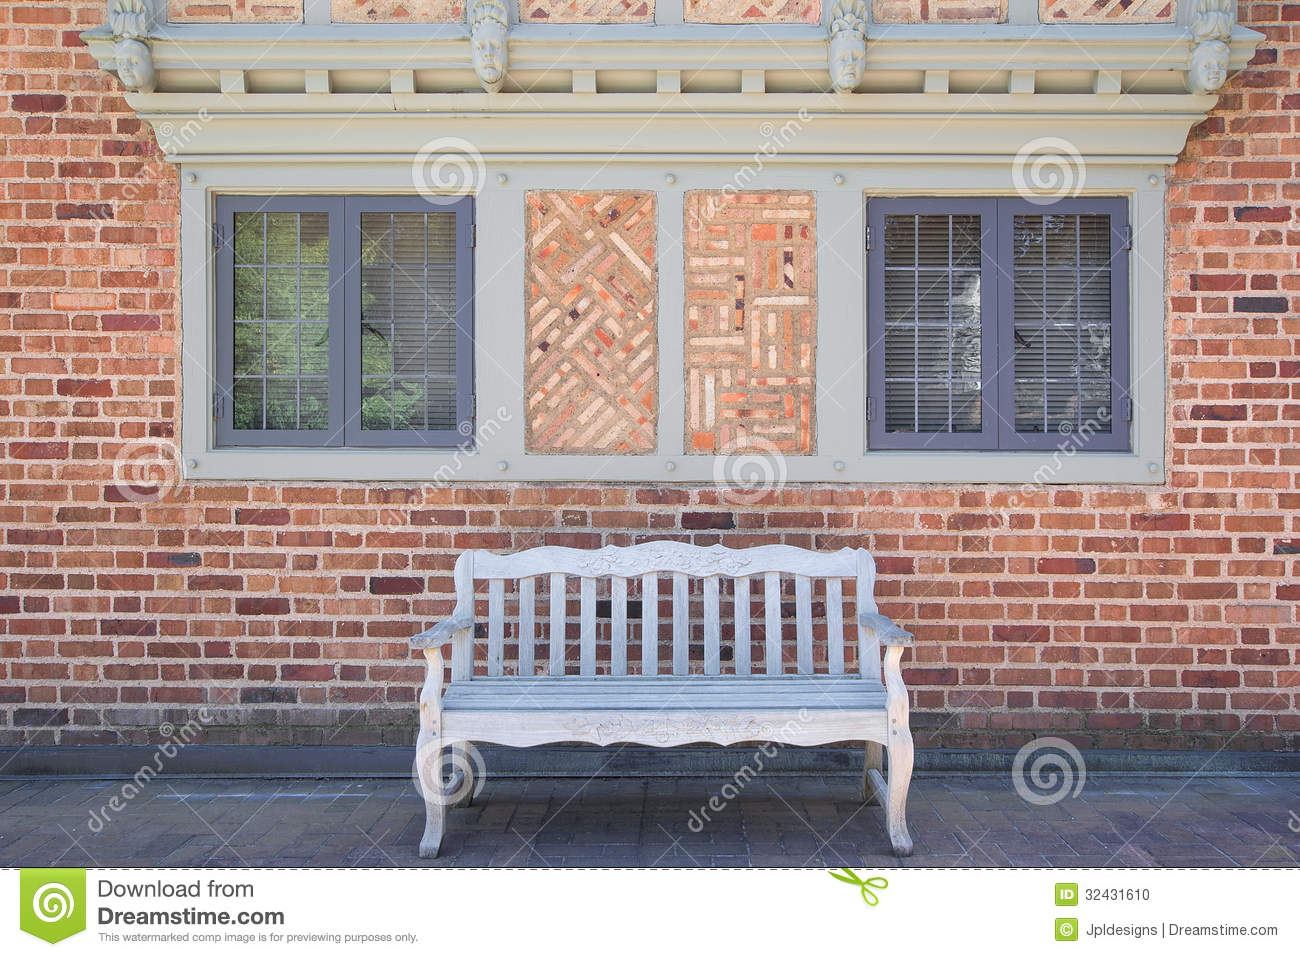 House Brick Exterior With Wood Bench Stock Photo Image 32431610